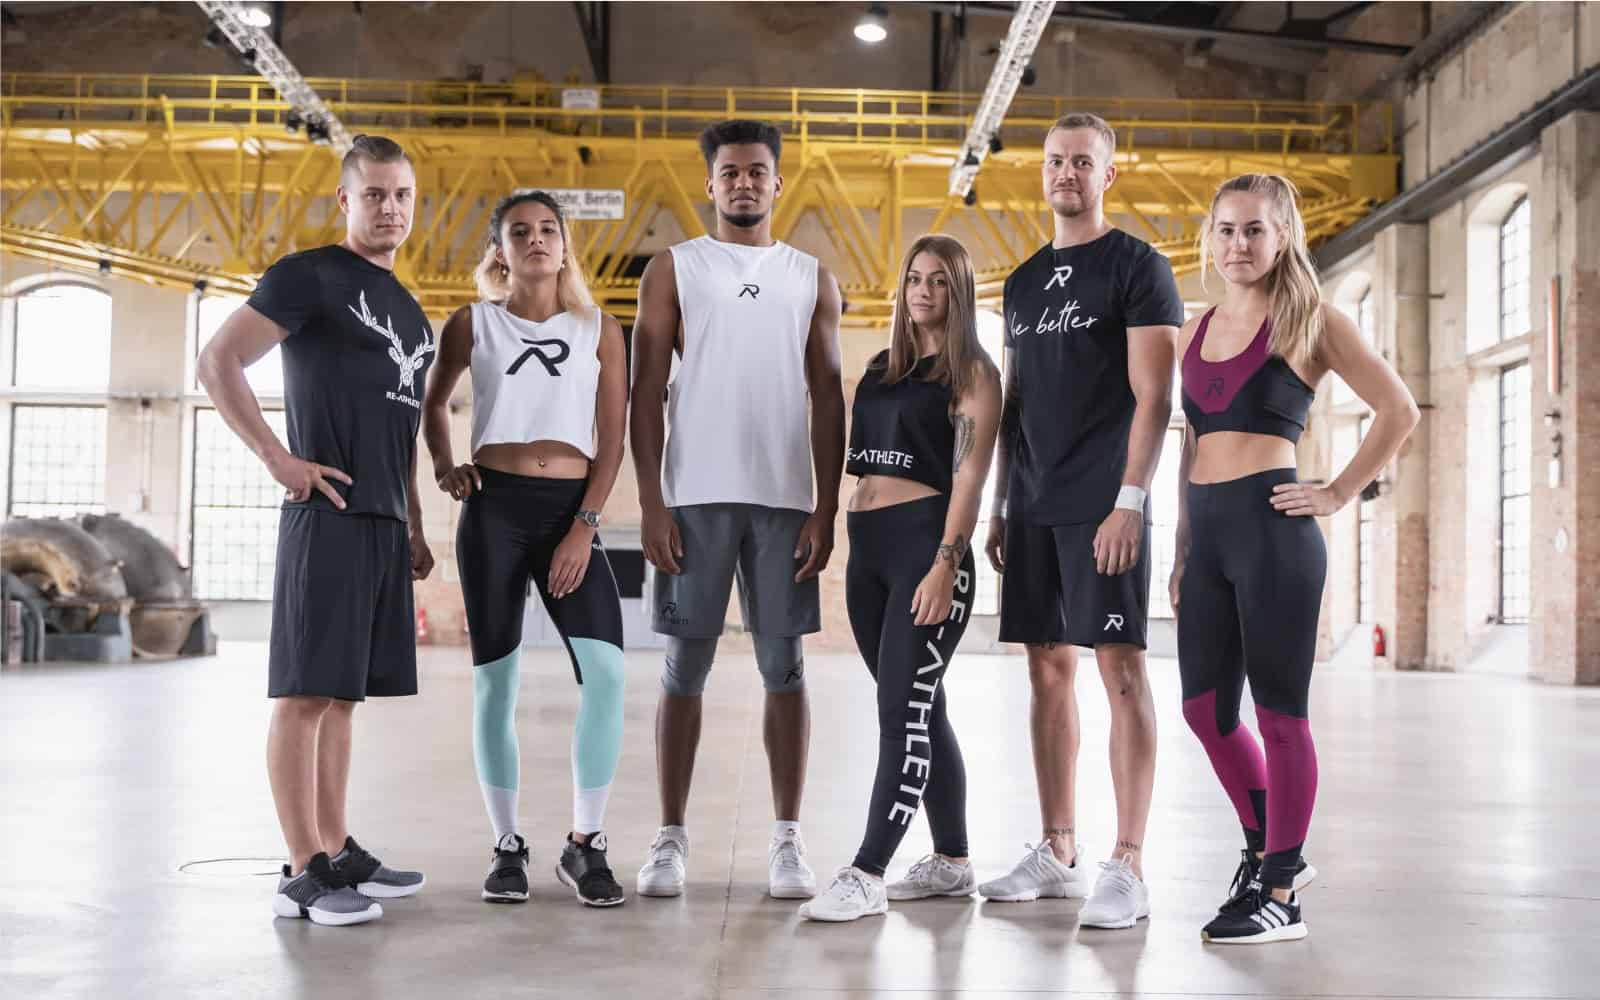 Re-Athlete Collection Sportler